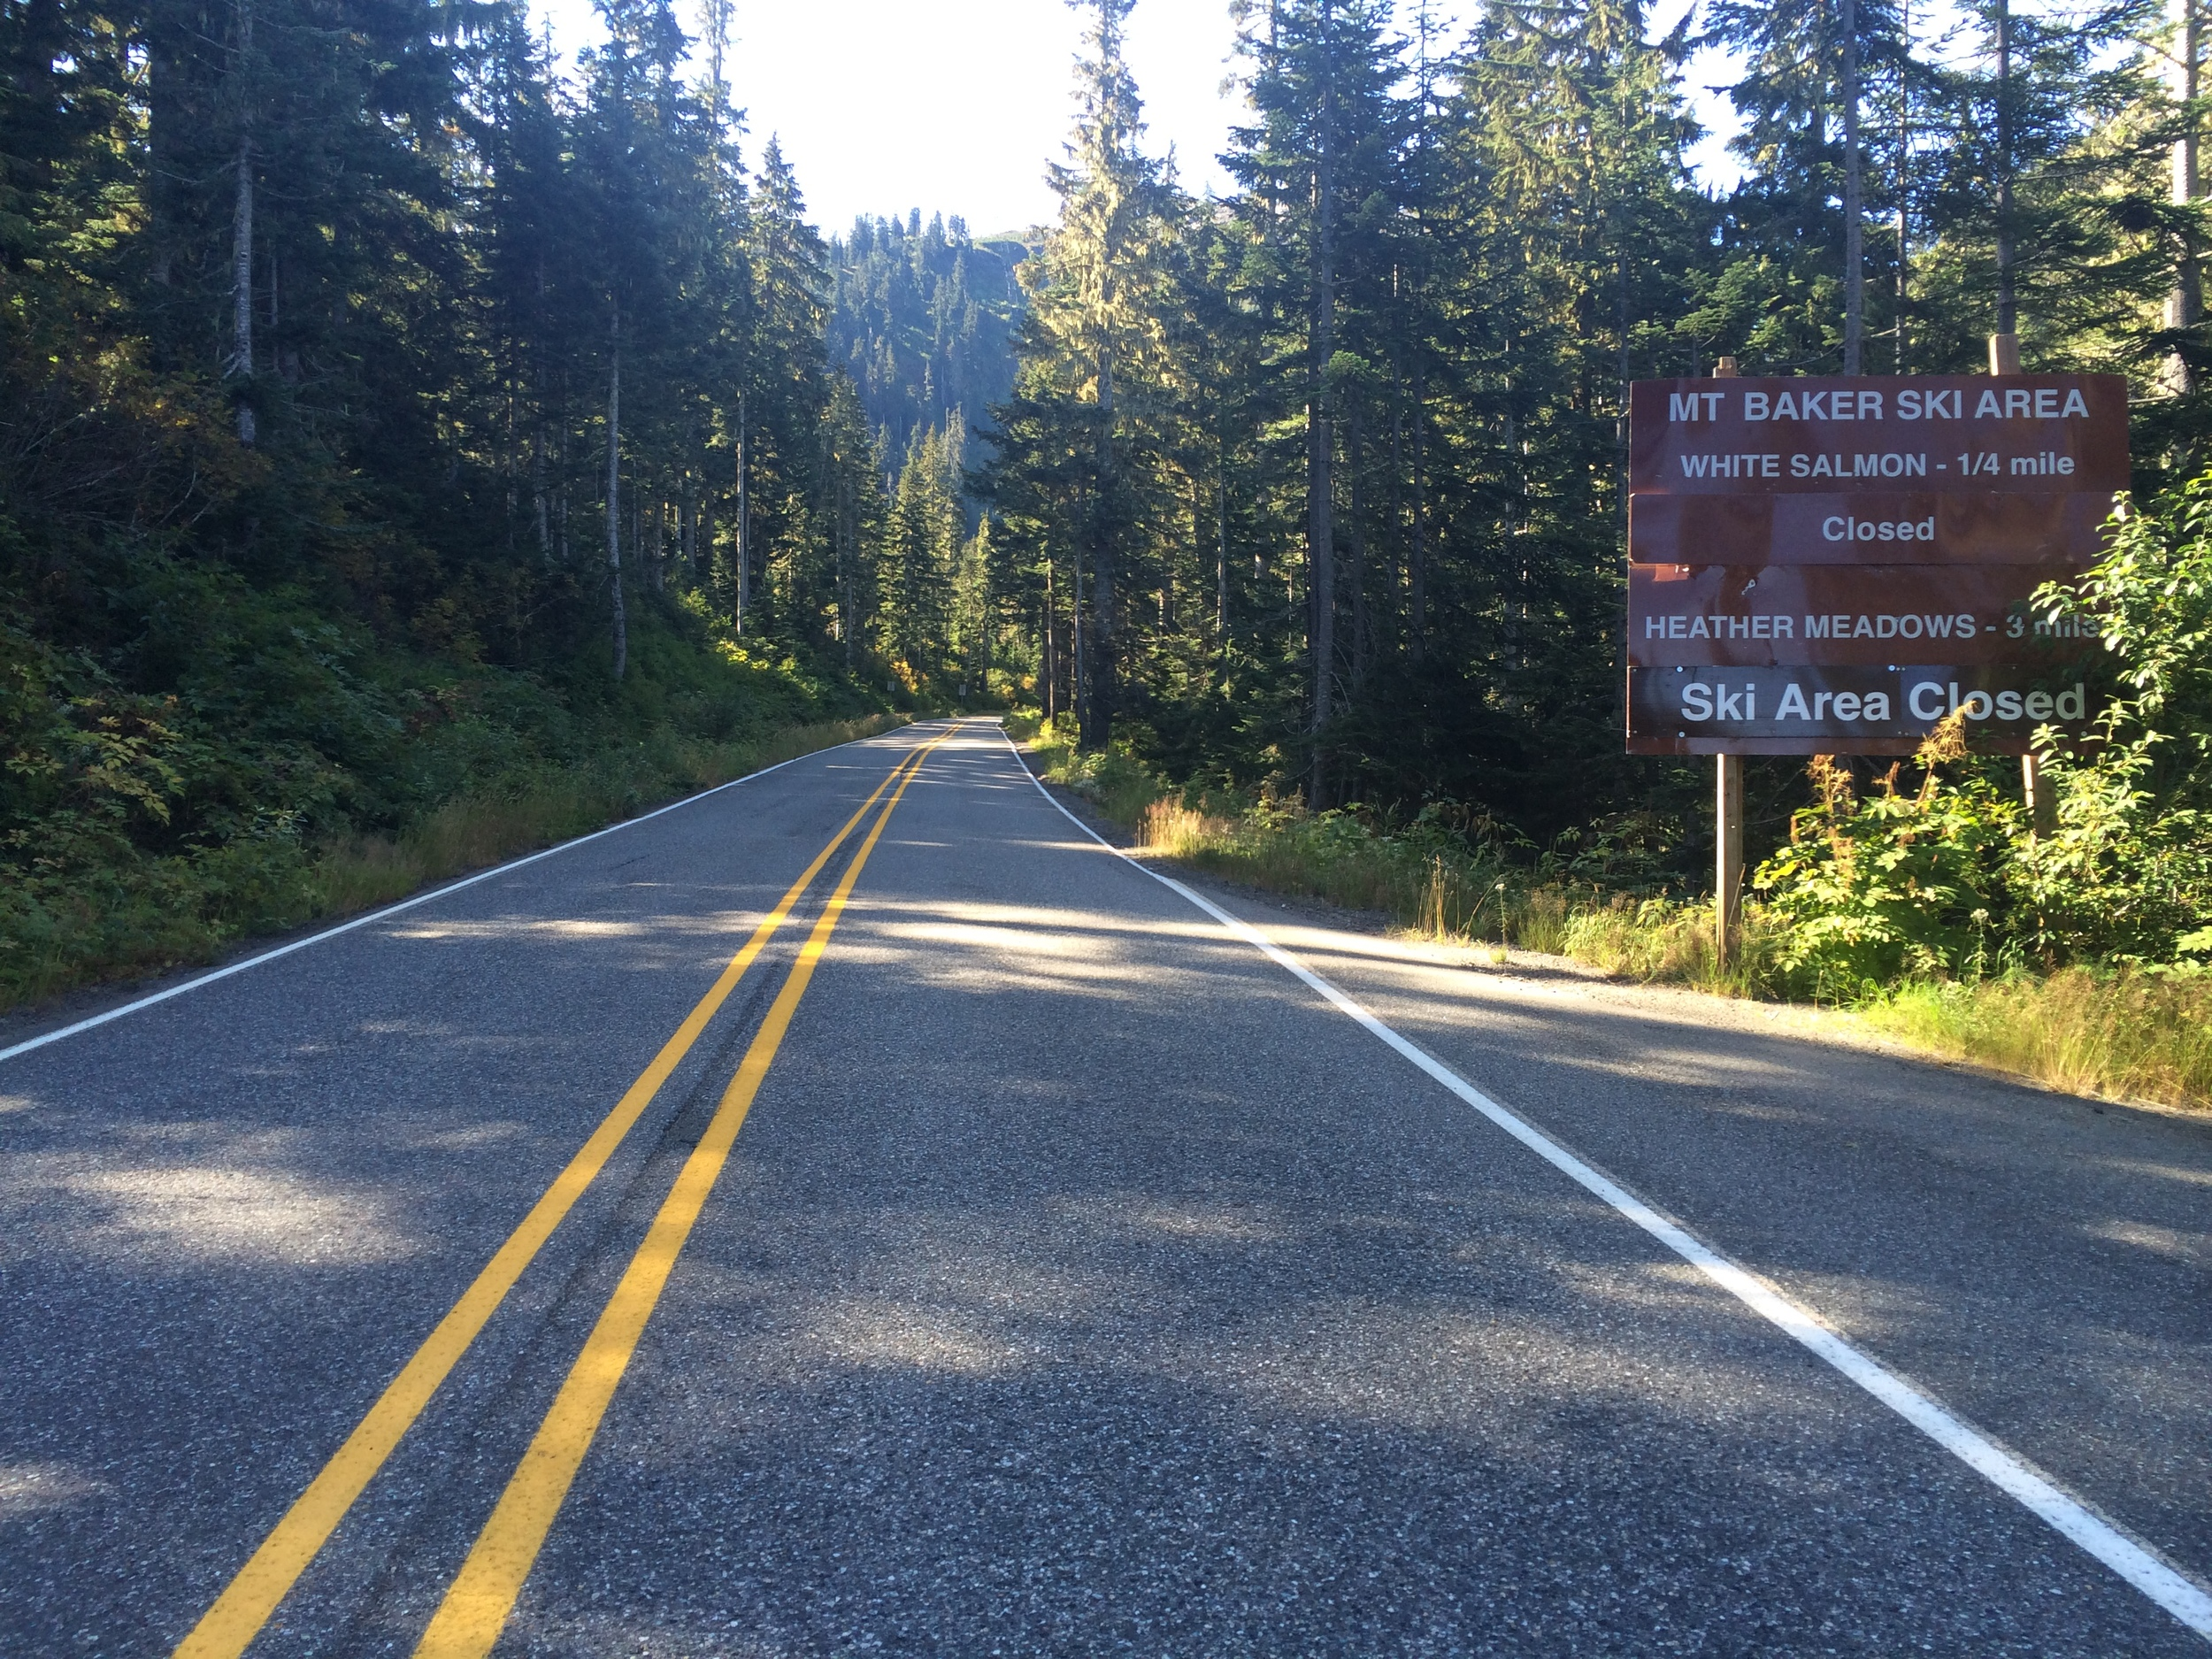 The road to Mt. Baker. Not a car in sight.